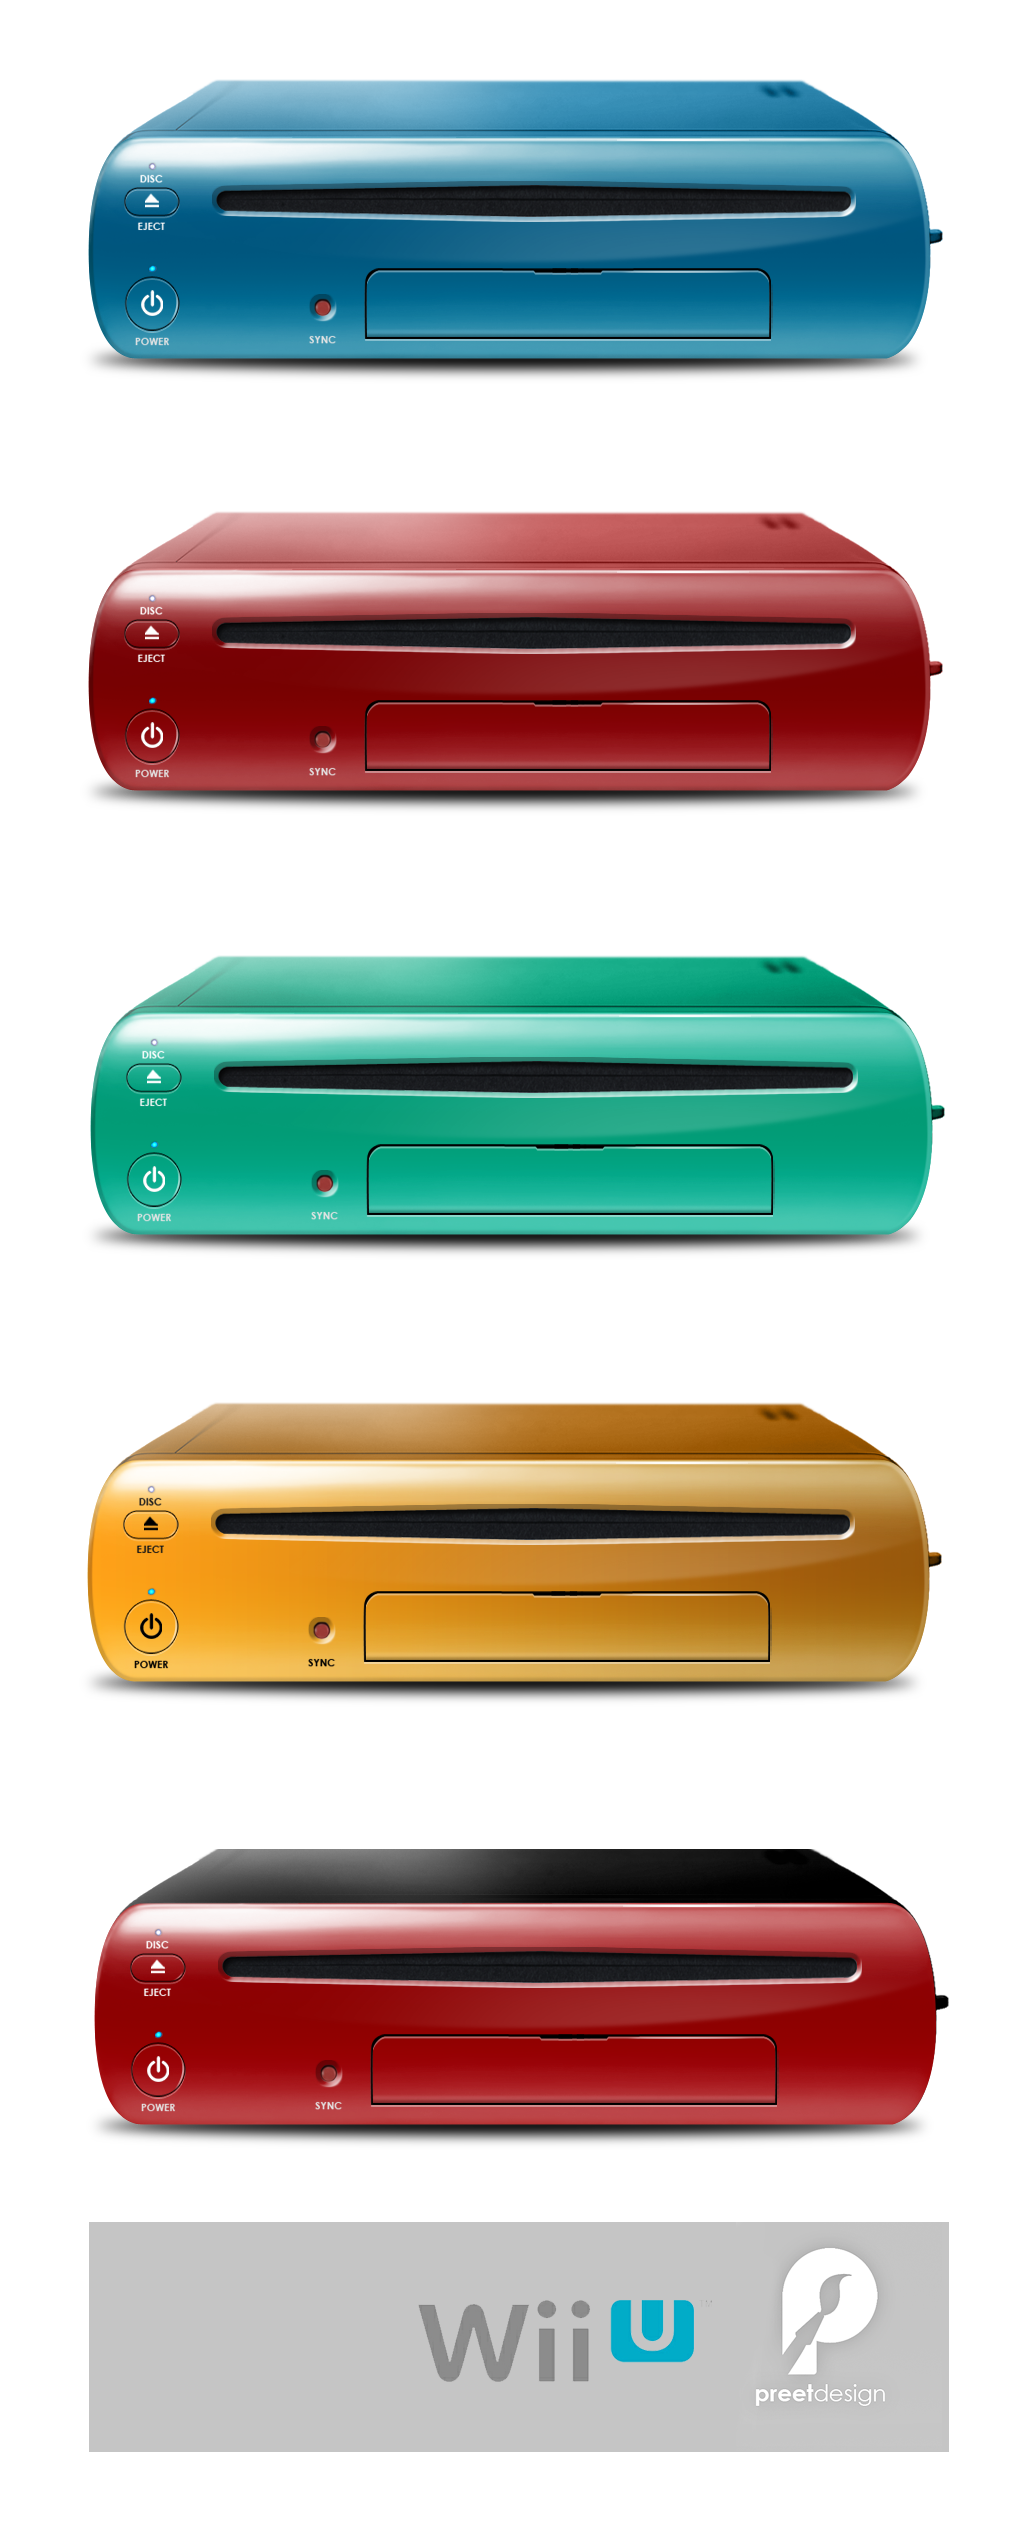 Why hasn't there been new Wii U colours? | IGN Boards